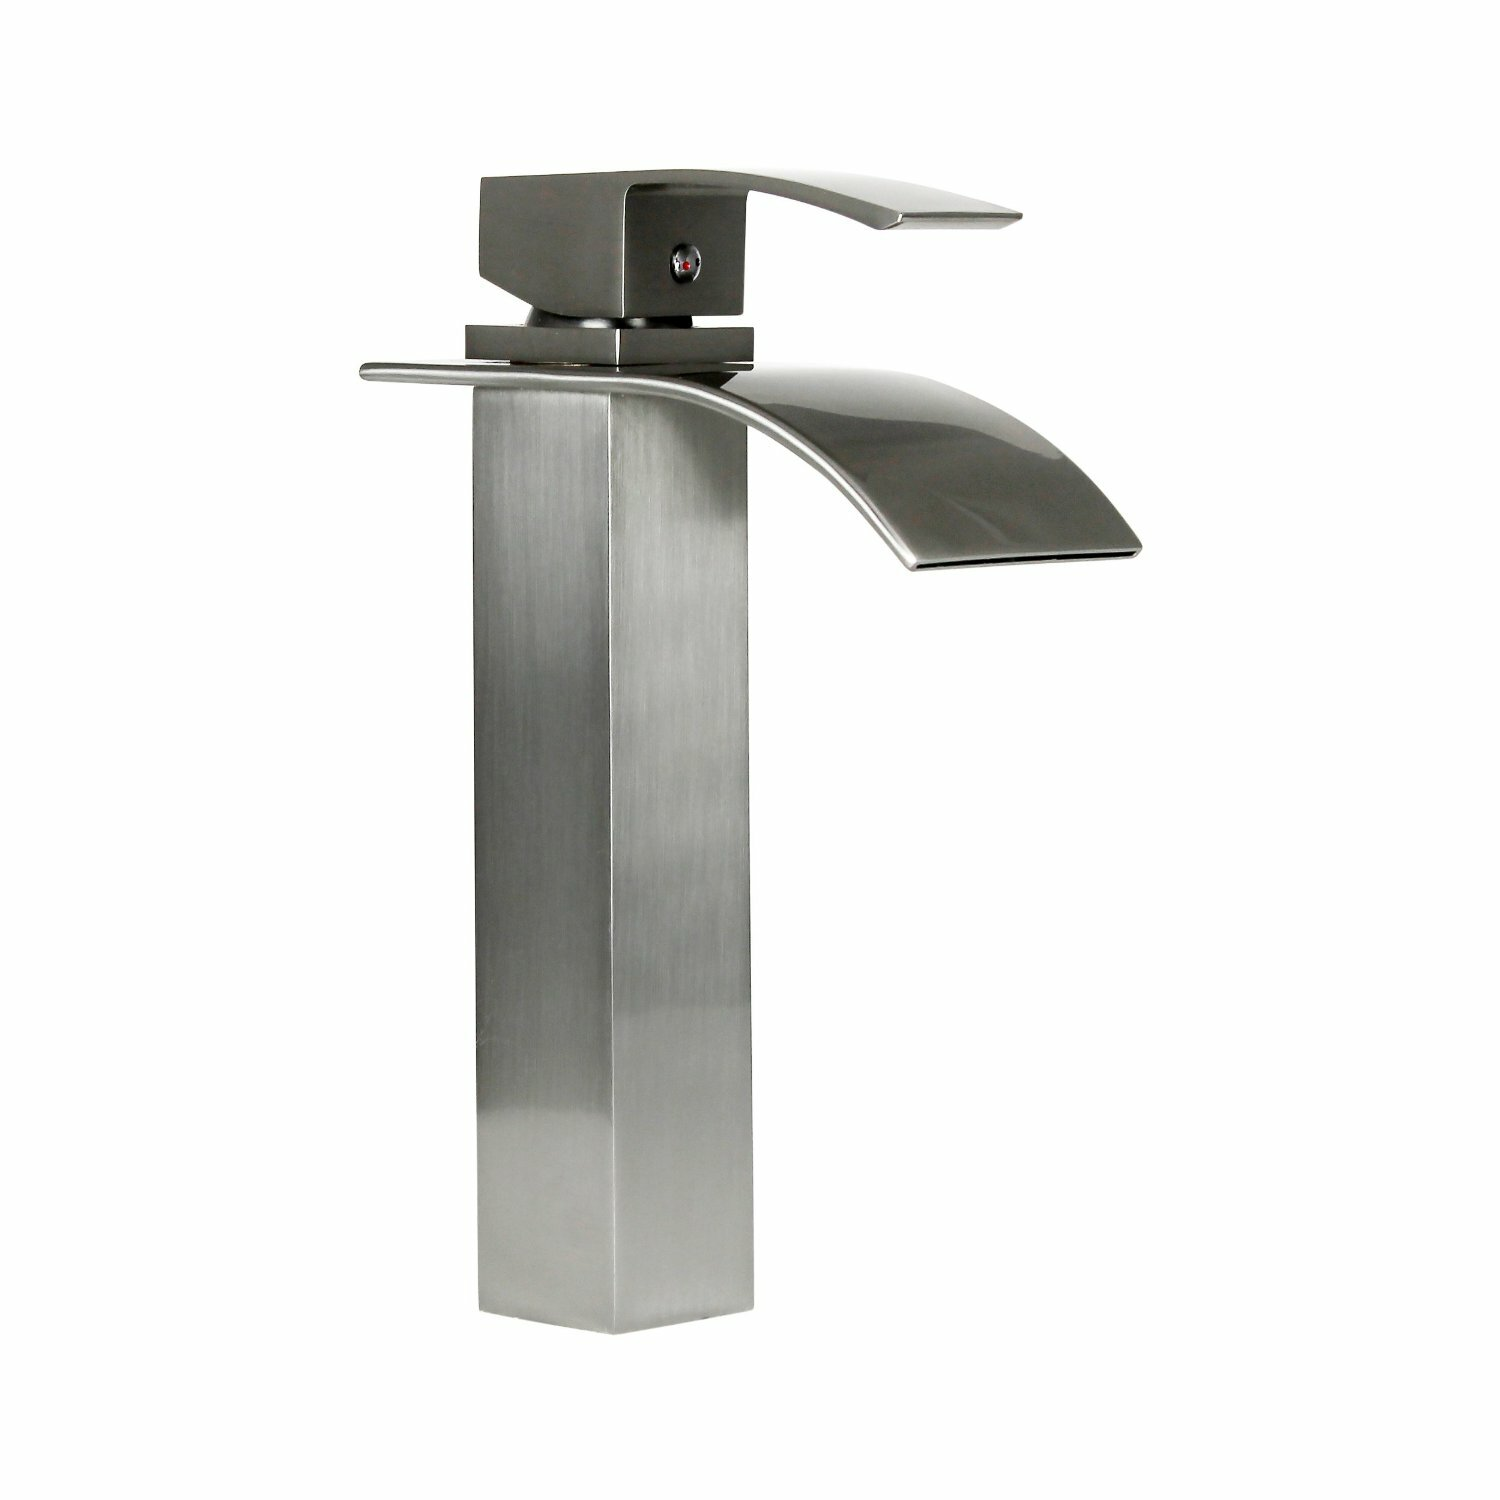 Dyconn faucet wye modern bathroom vessel sink faucet for Modern bathroom fixtures